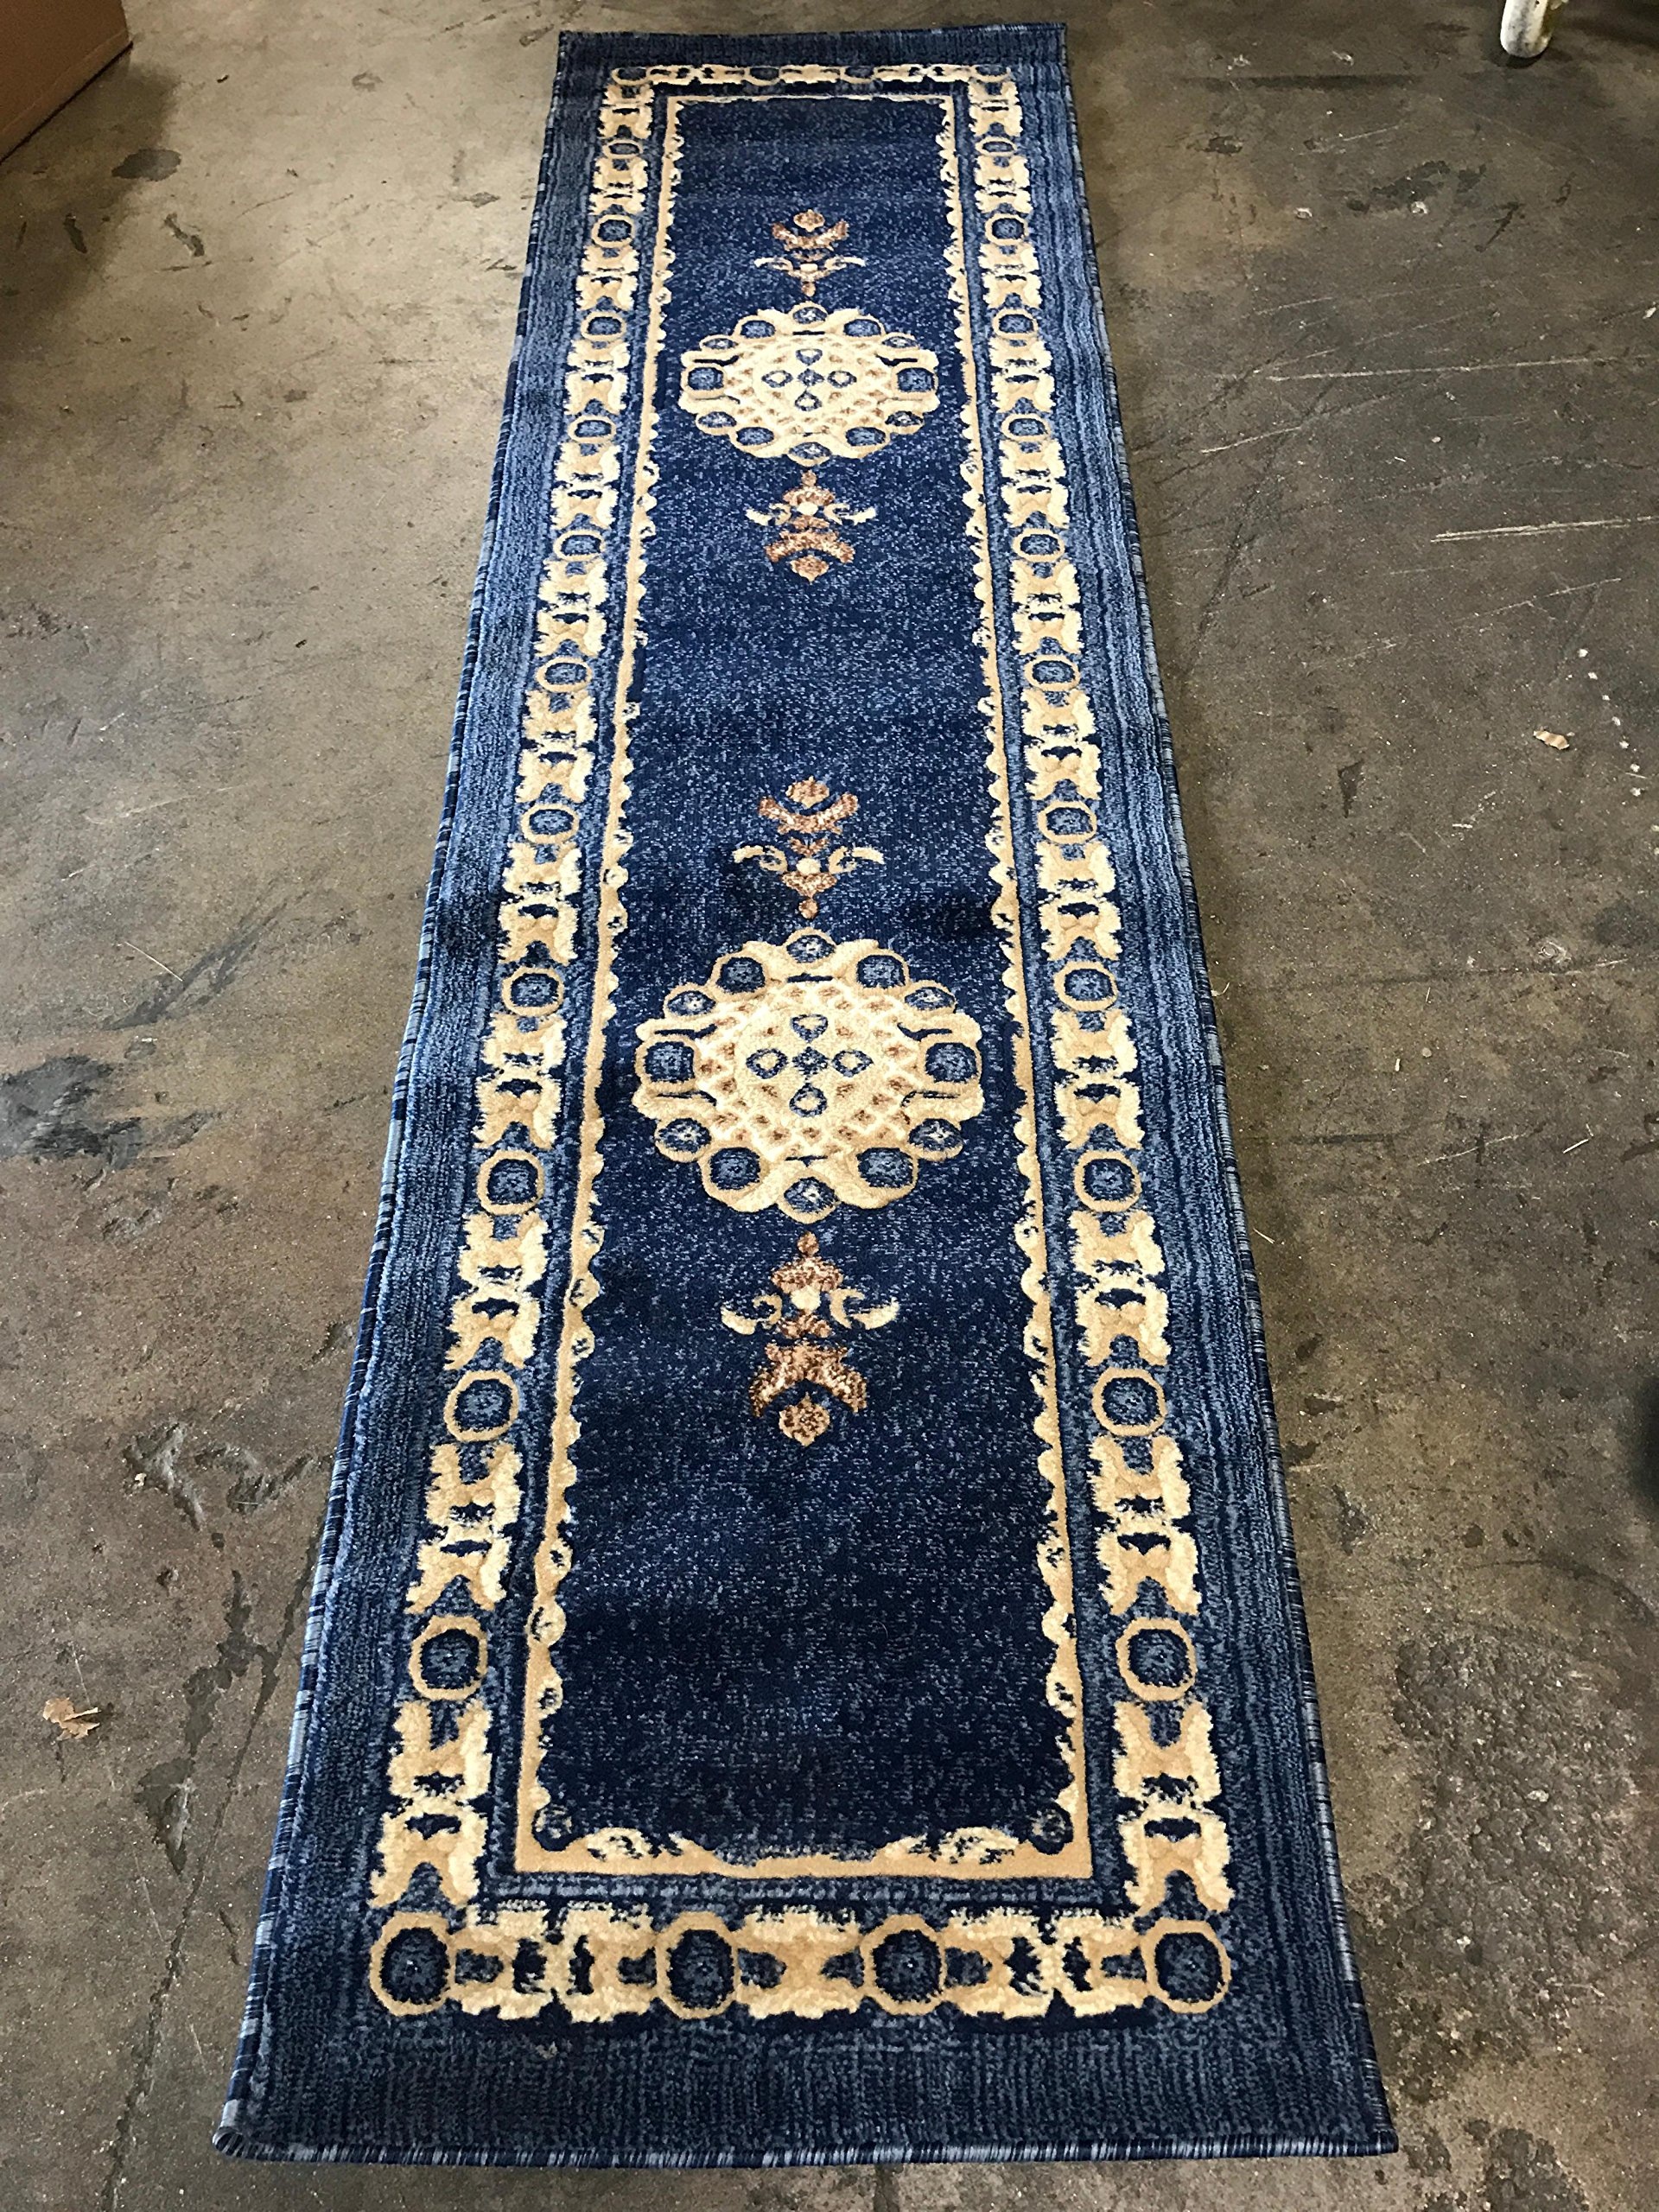 Traditional Persian Runner Area Rug Navy Blue Design 121 (2 Feet X 7 Feet 3 Inch) - Traditional Long Persian Runner Rug Navy Blue Design 121 Americana (2 Feet X 7 feet 3 inch ) Quality textured navy blue runner with dark blue, light blue,beige and cream. Easy to clean (stain resistant and soil proof)and very durable. - runner-rugs, entryway-furniture-decor, entryway-laundry-room - A1IneRo0gkL -